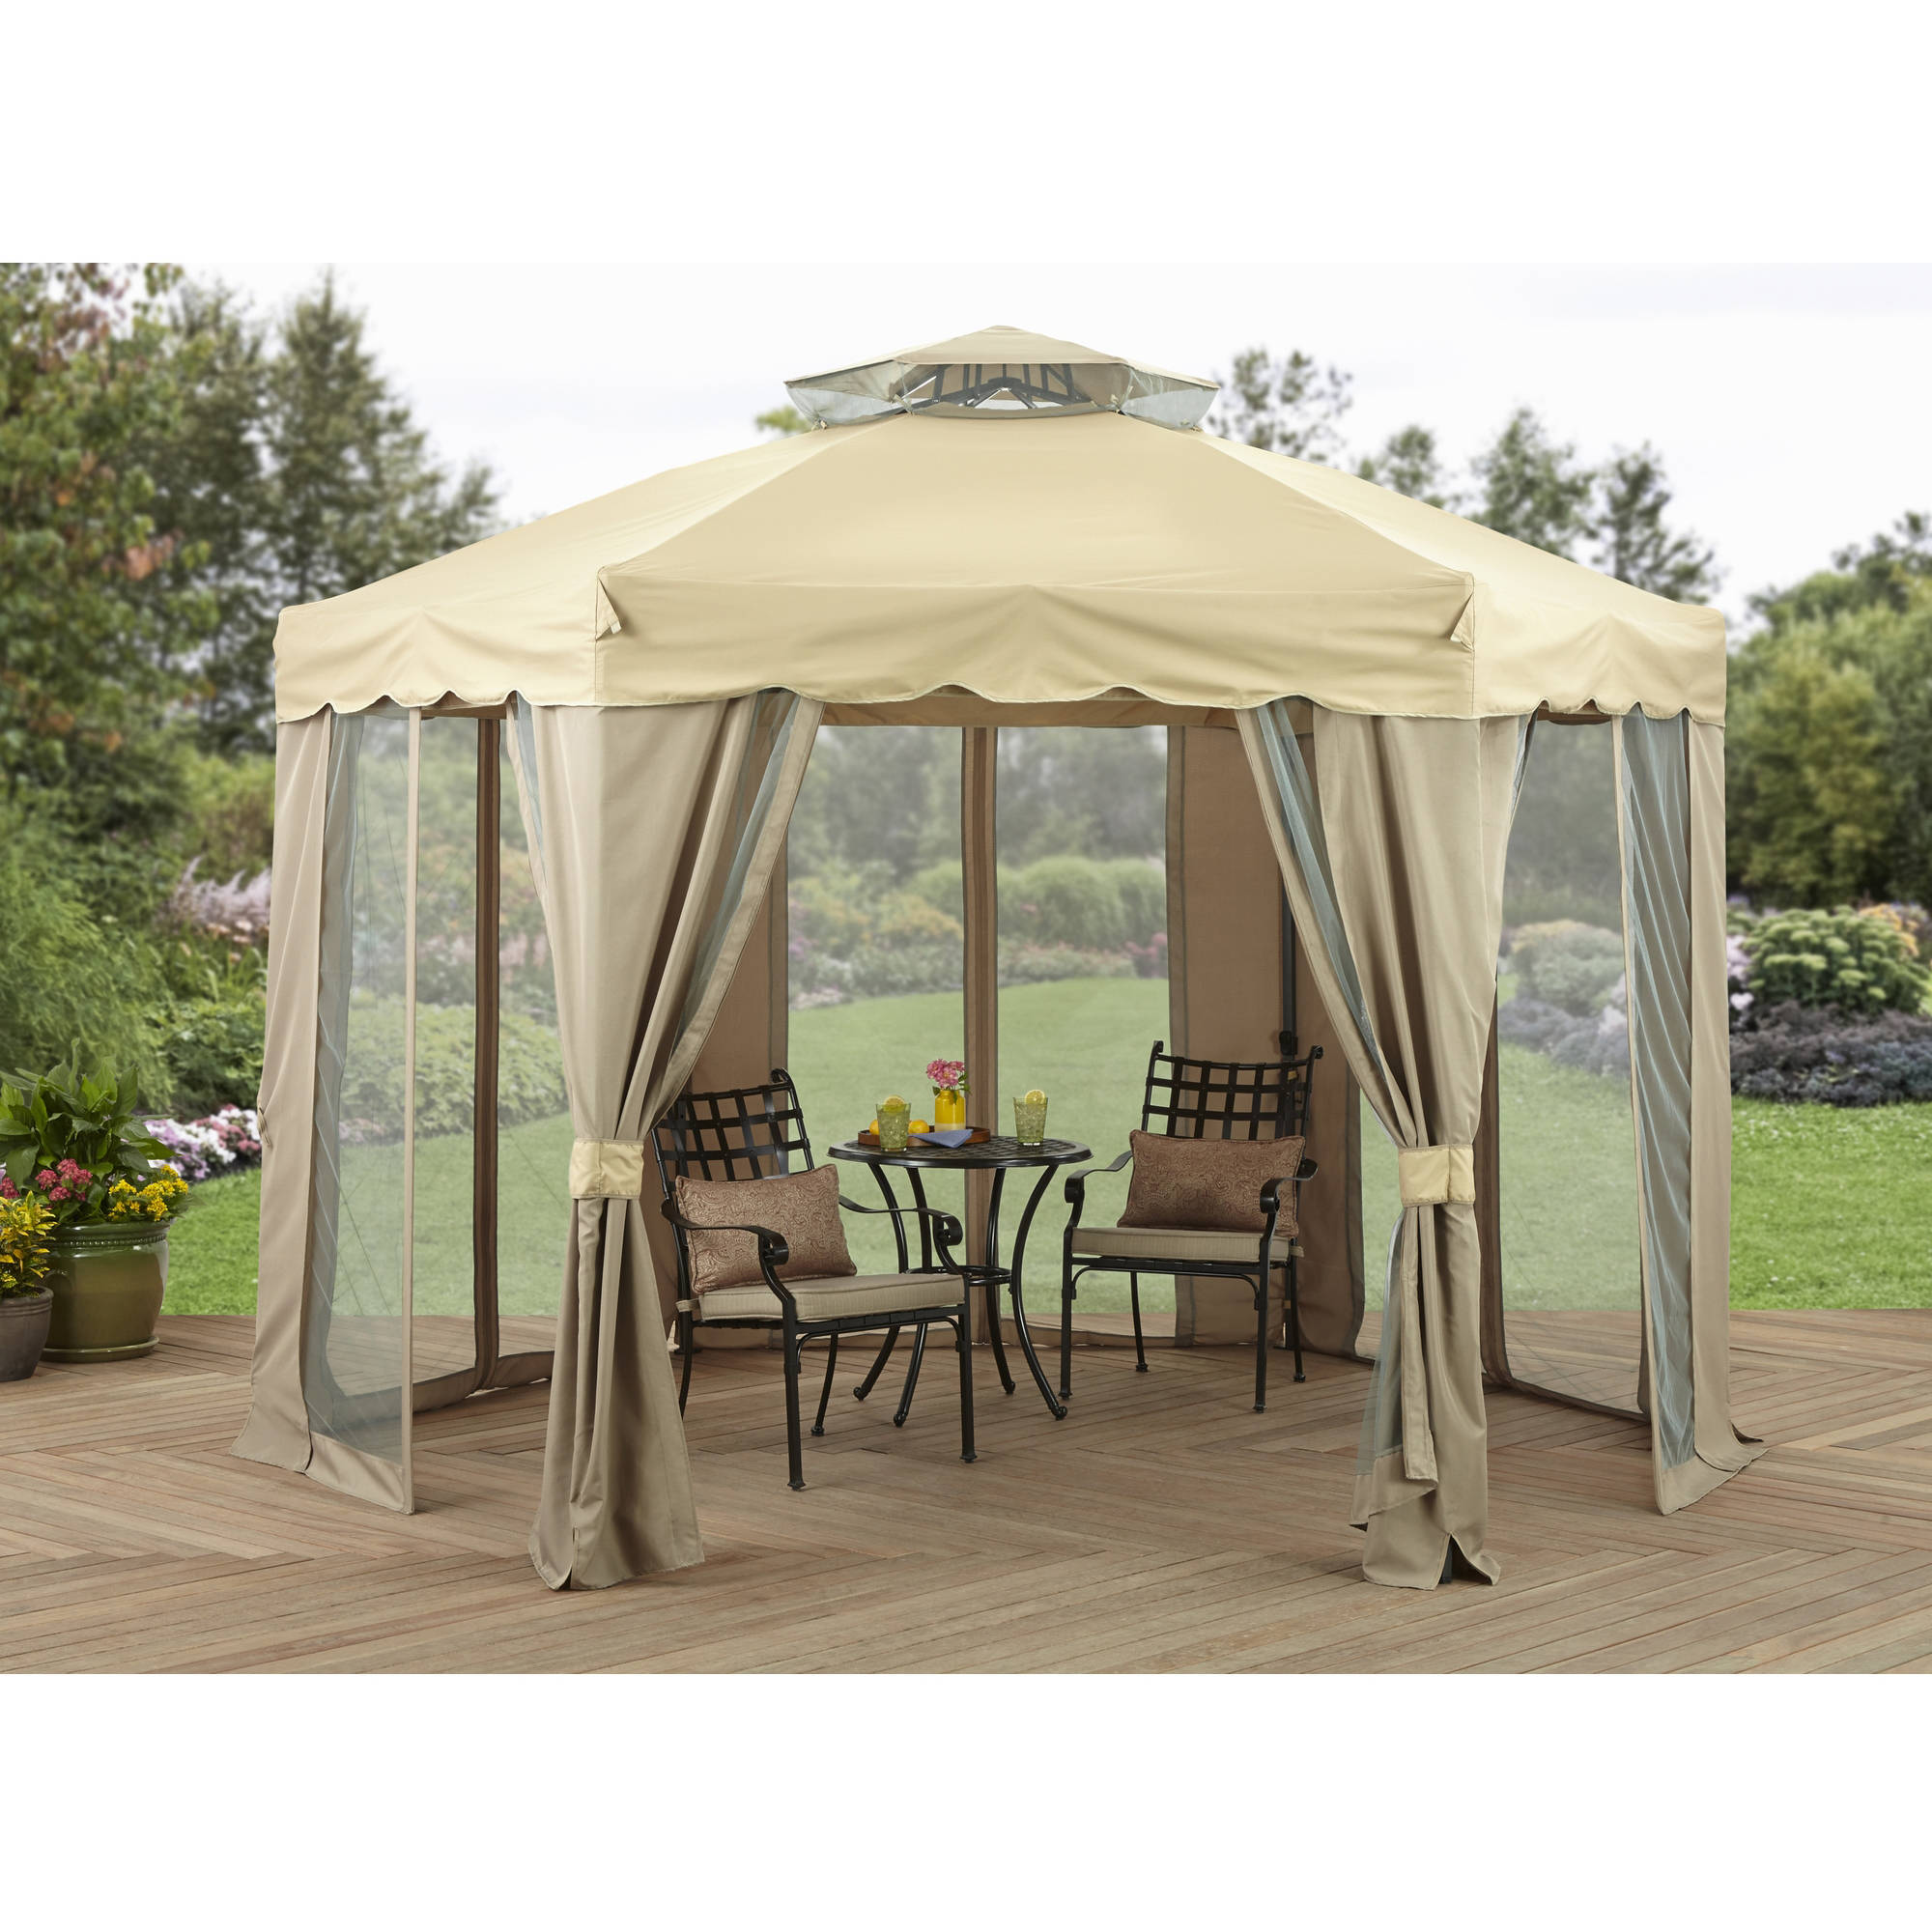 Better Homes And Gardens 12u0027 X 12u0027 Outdoor Gilded Grove Gazebo